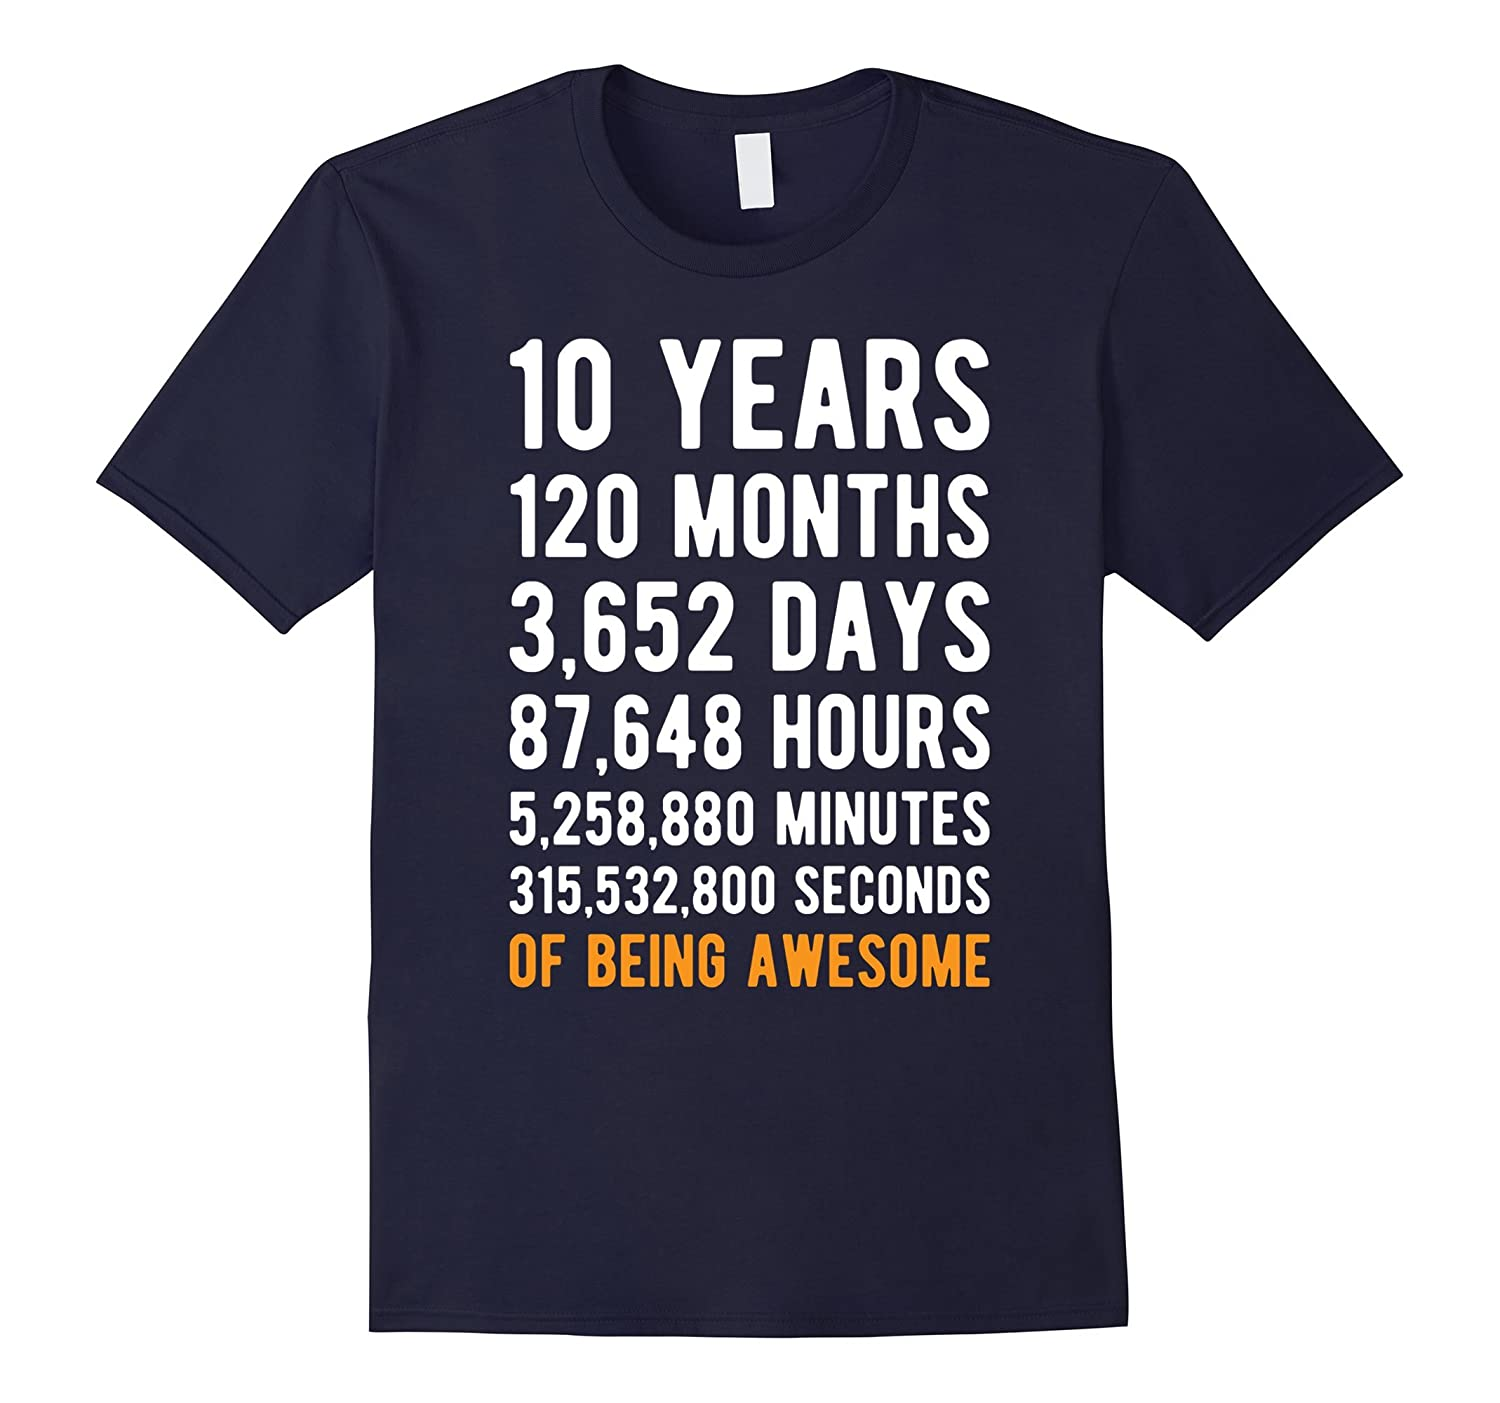 10th Birthday Gift T Shirt 10 Years Old Being Awesome Tee-ah my shirt one gift